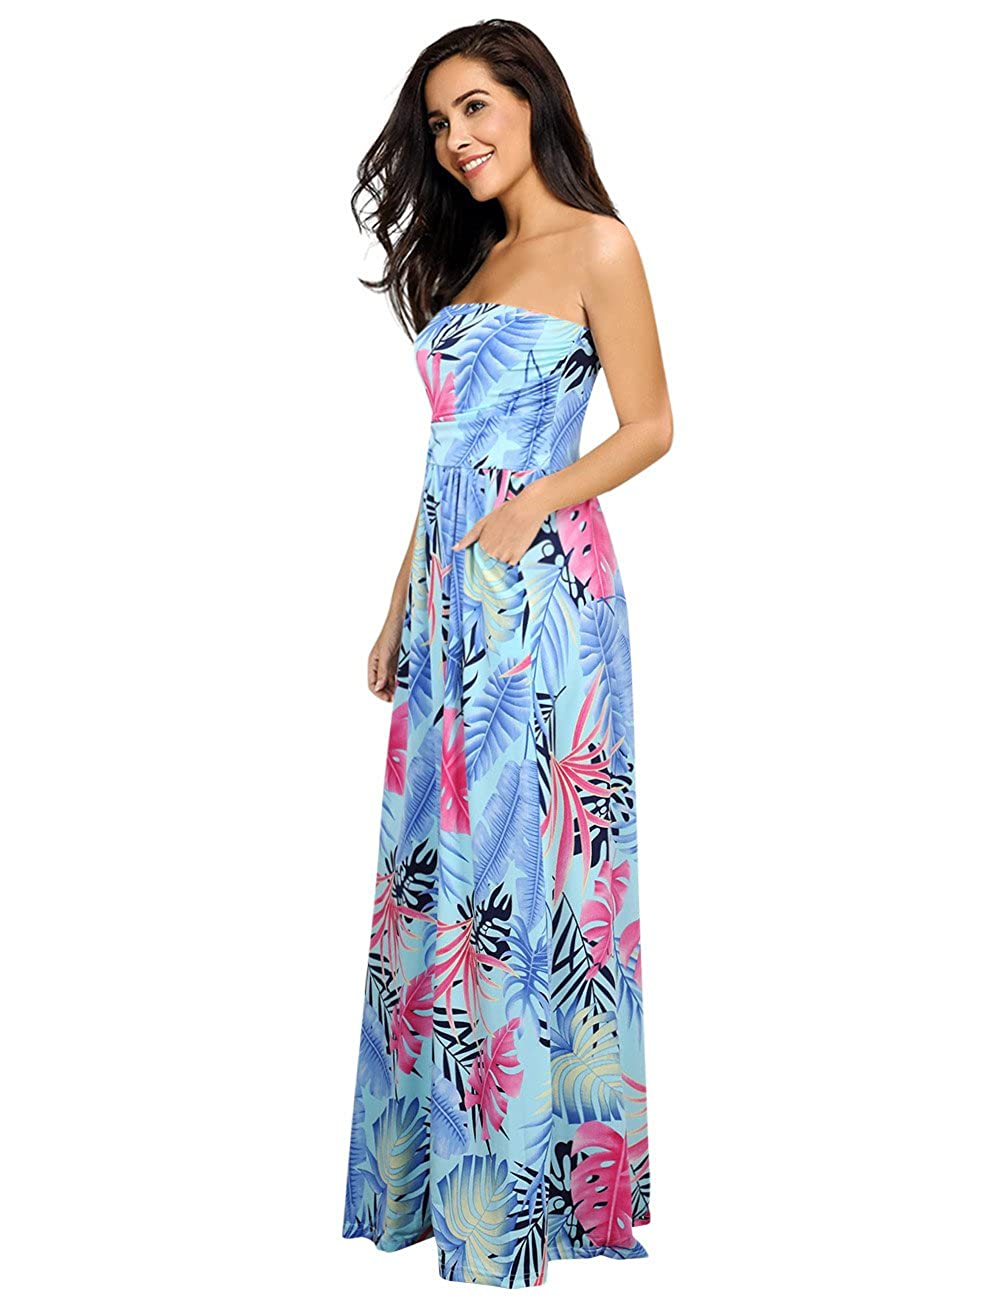 48463cac1d2 Amazon.com: Leadingstar Women's Floral Casual Beach Party Maxi Dress:  Clothing